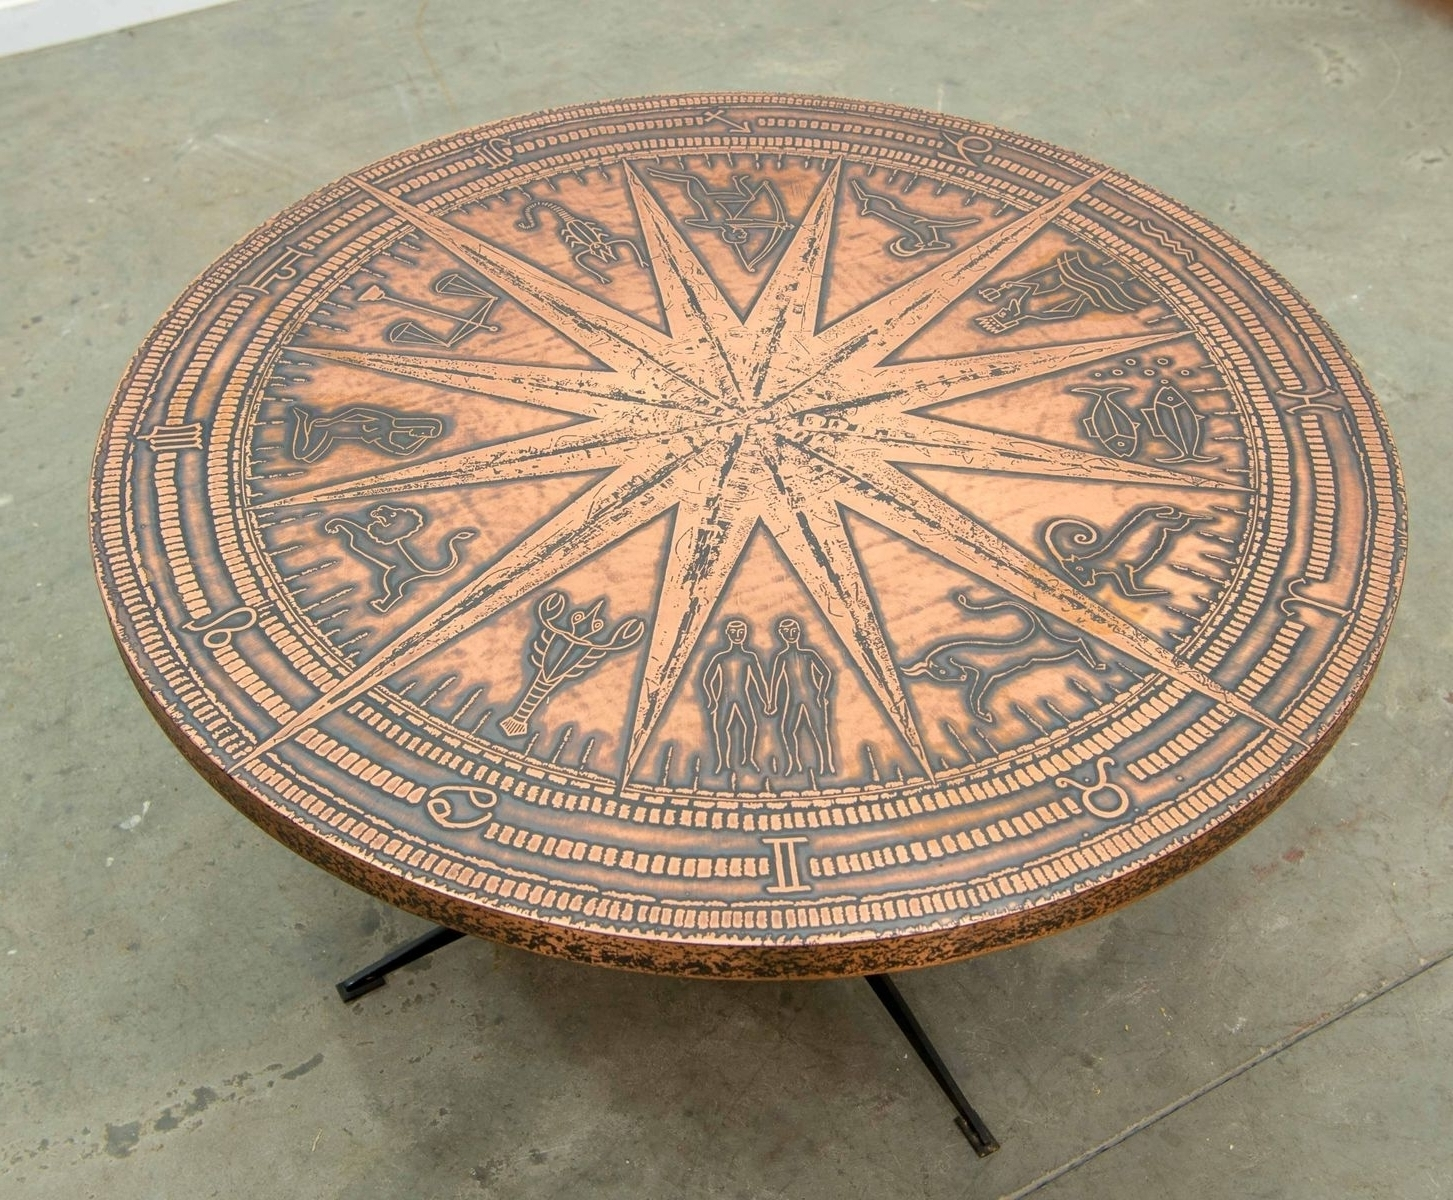 Swell Round Coffee Table — New Home Design : Round Coffee Table Inside Most Up To Date Swell Round Coffee Tables (View 7 of 20)